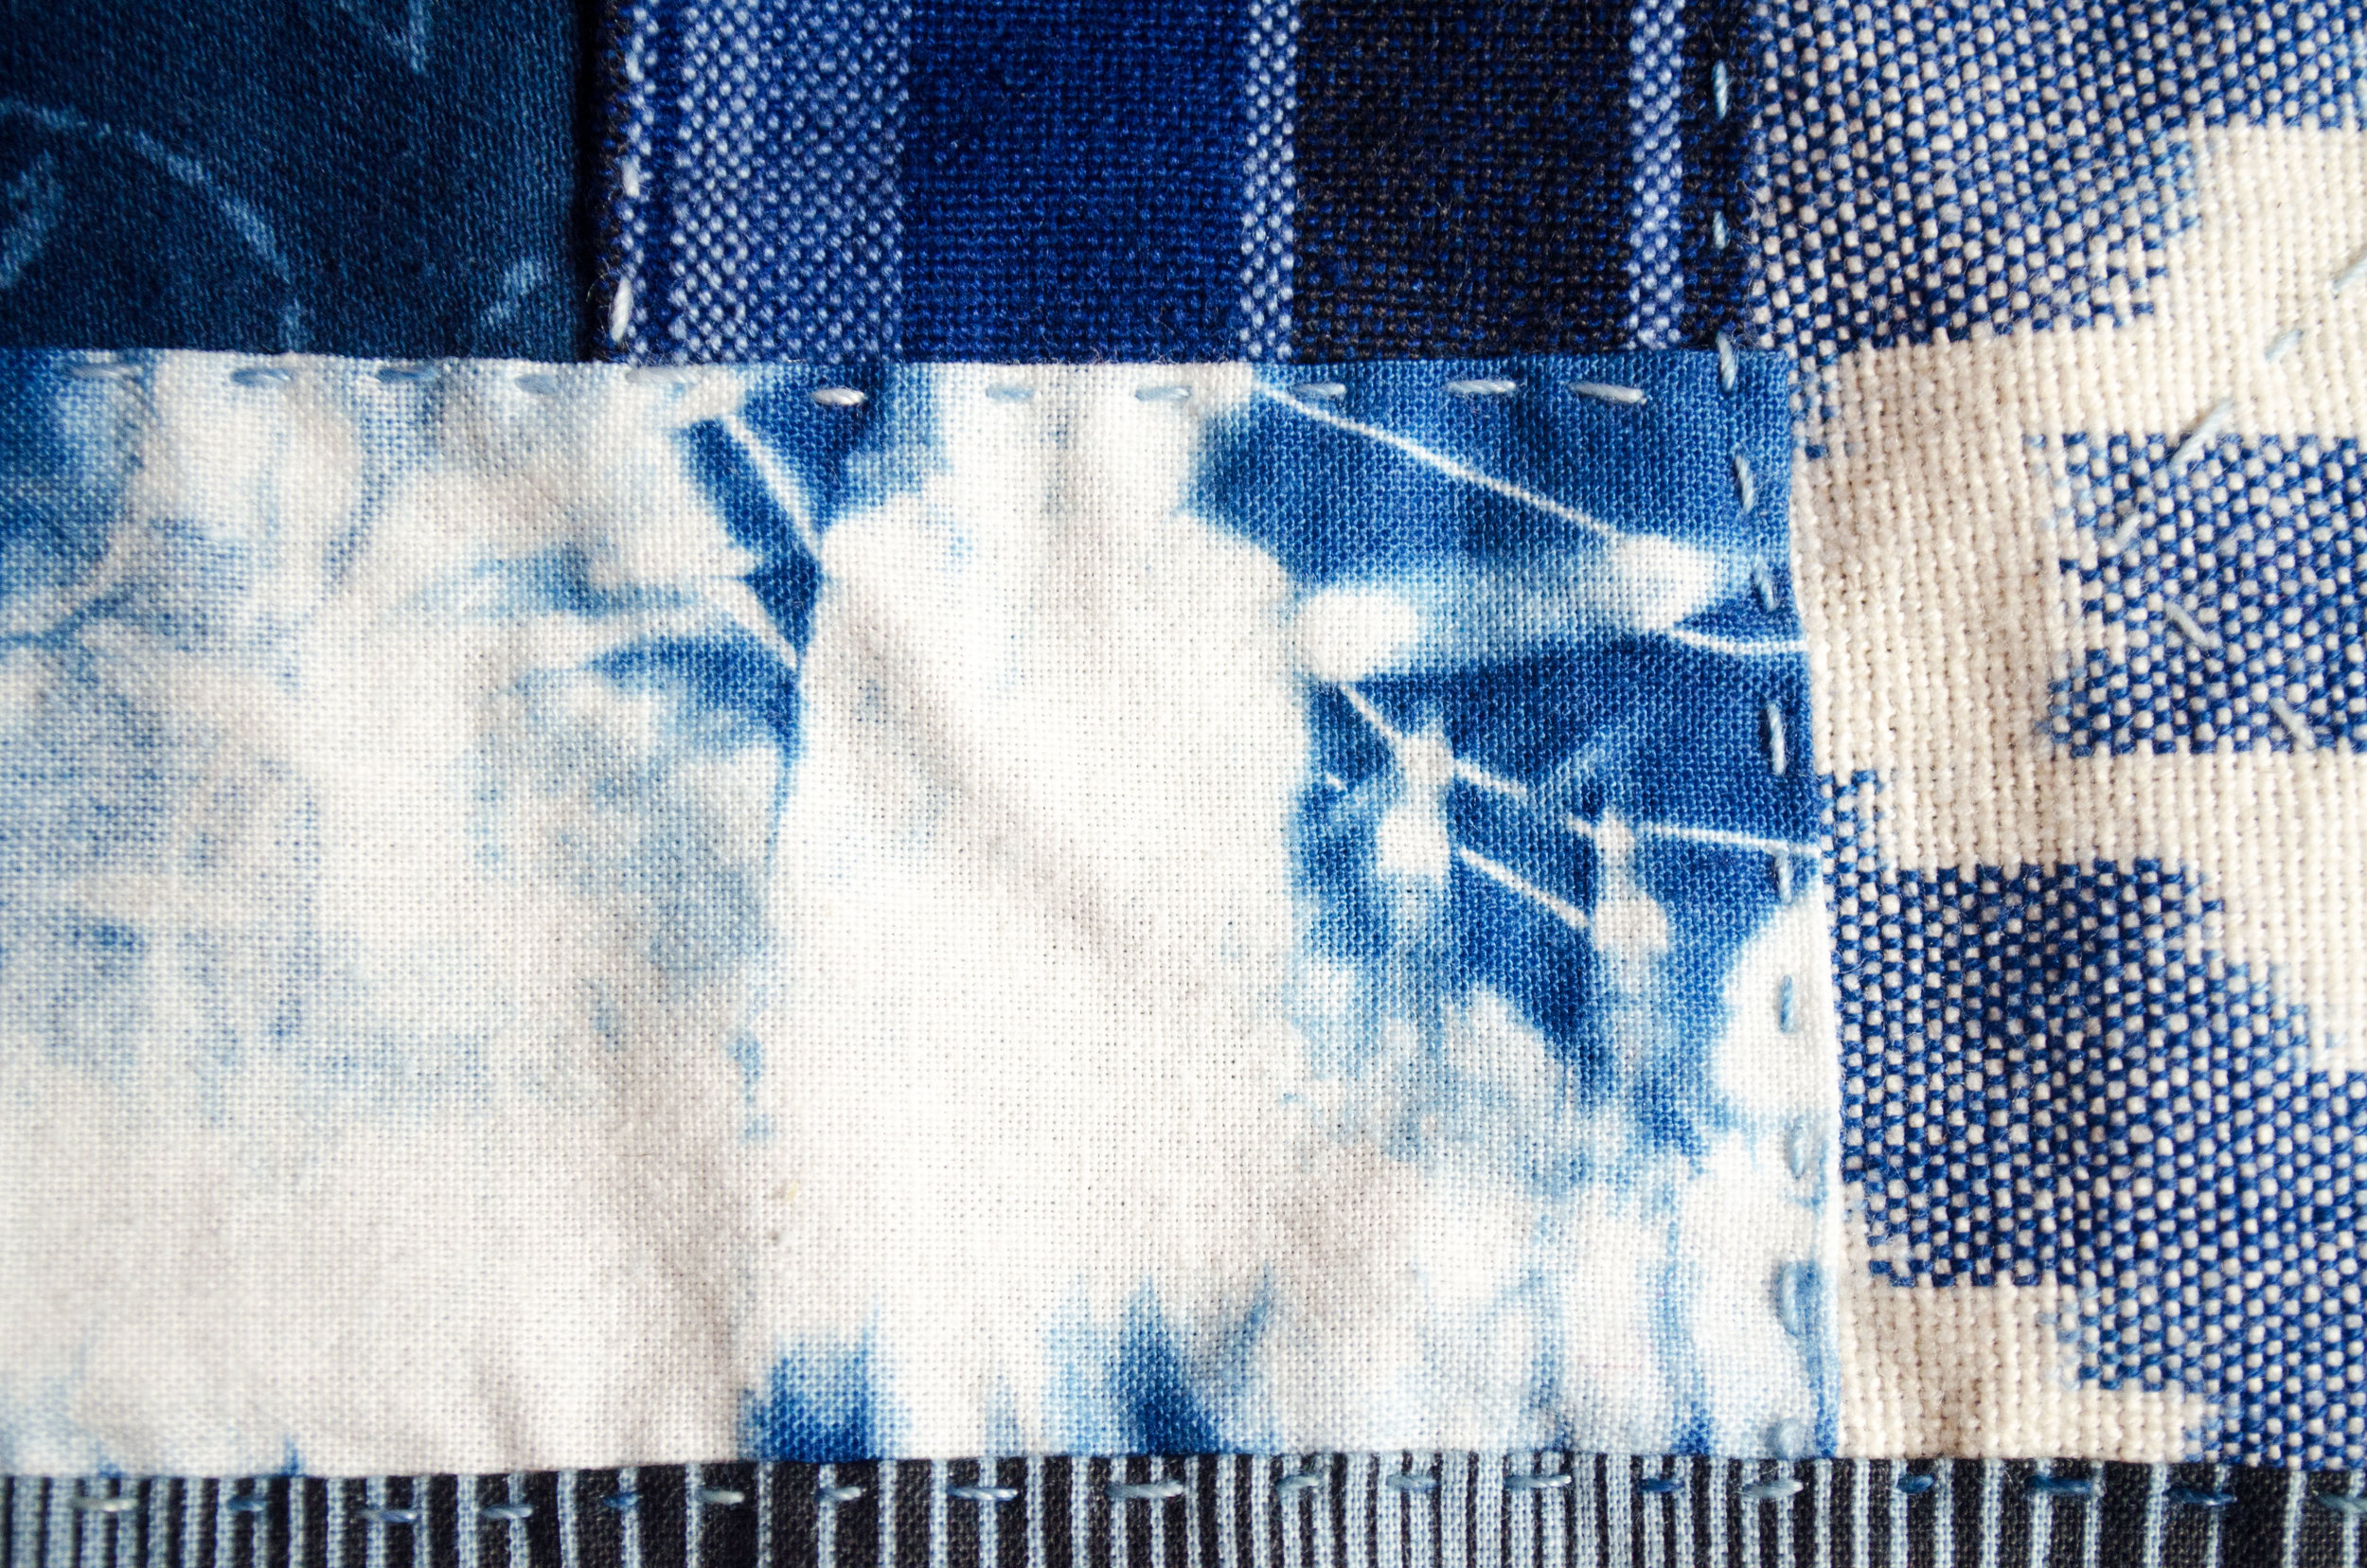 Shibori wrapped cotton dipped in the indigo vat and stitched onto this evolving boro inspired jacket